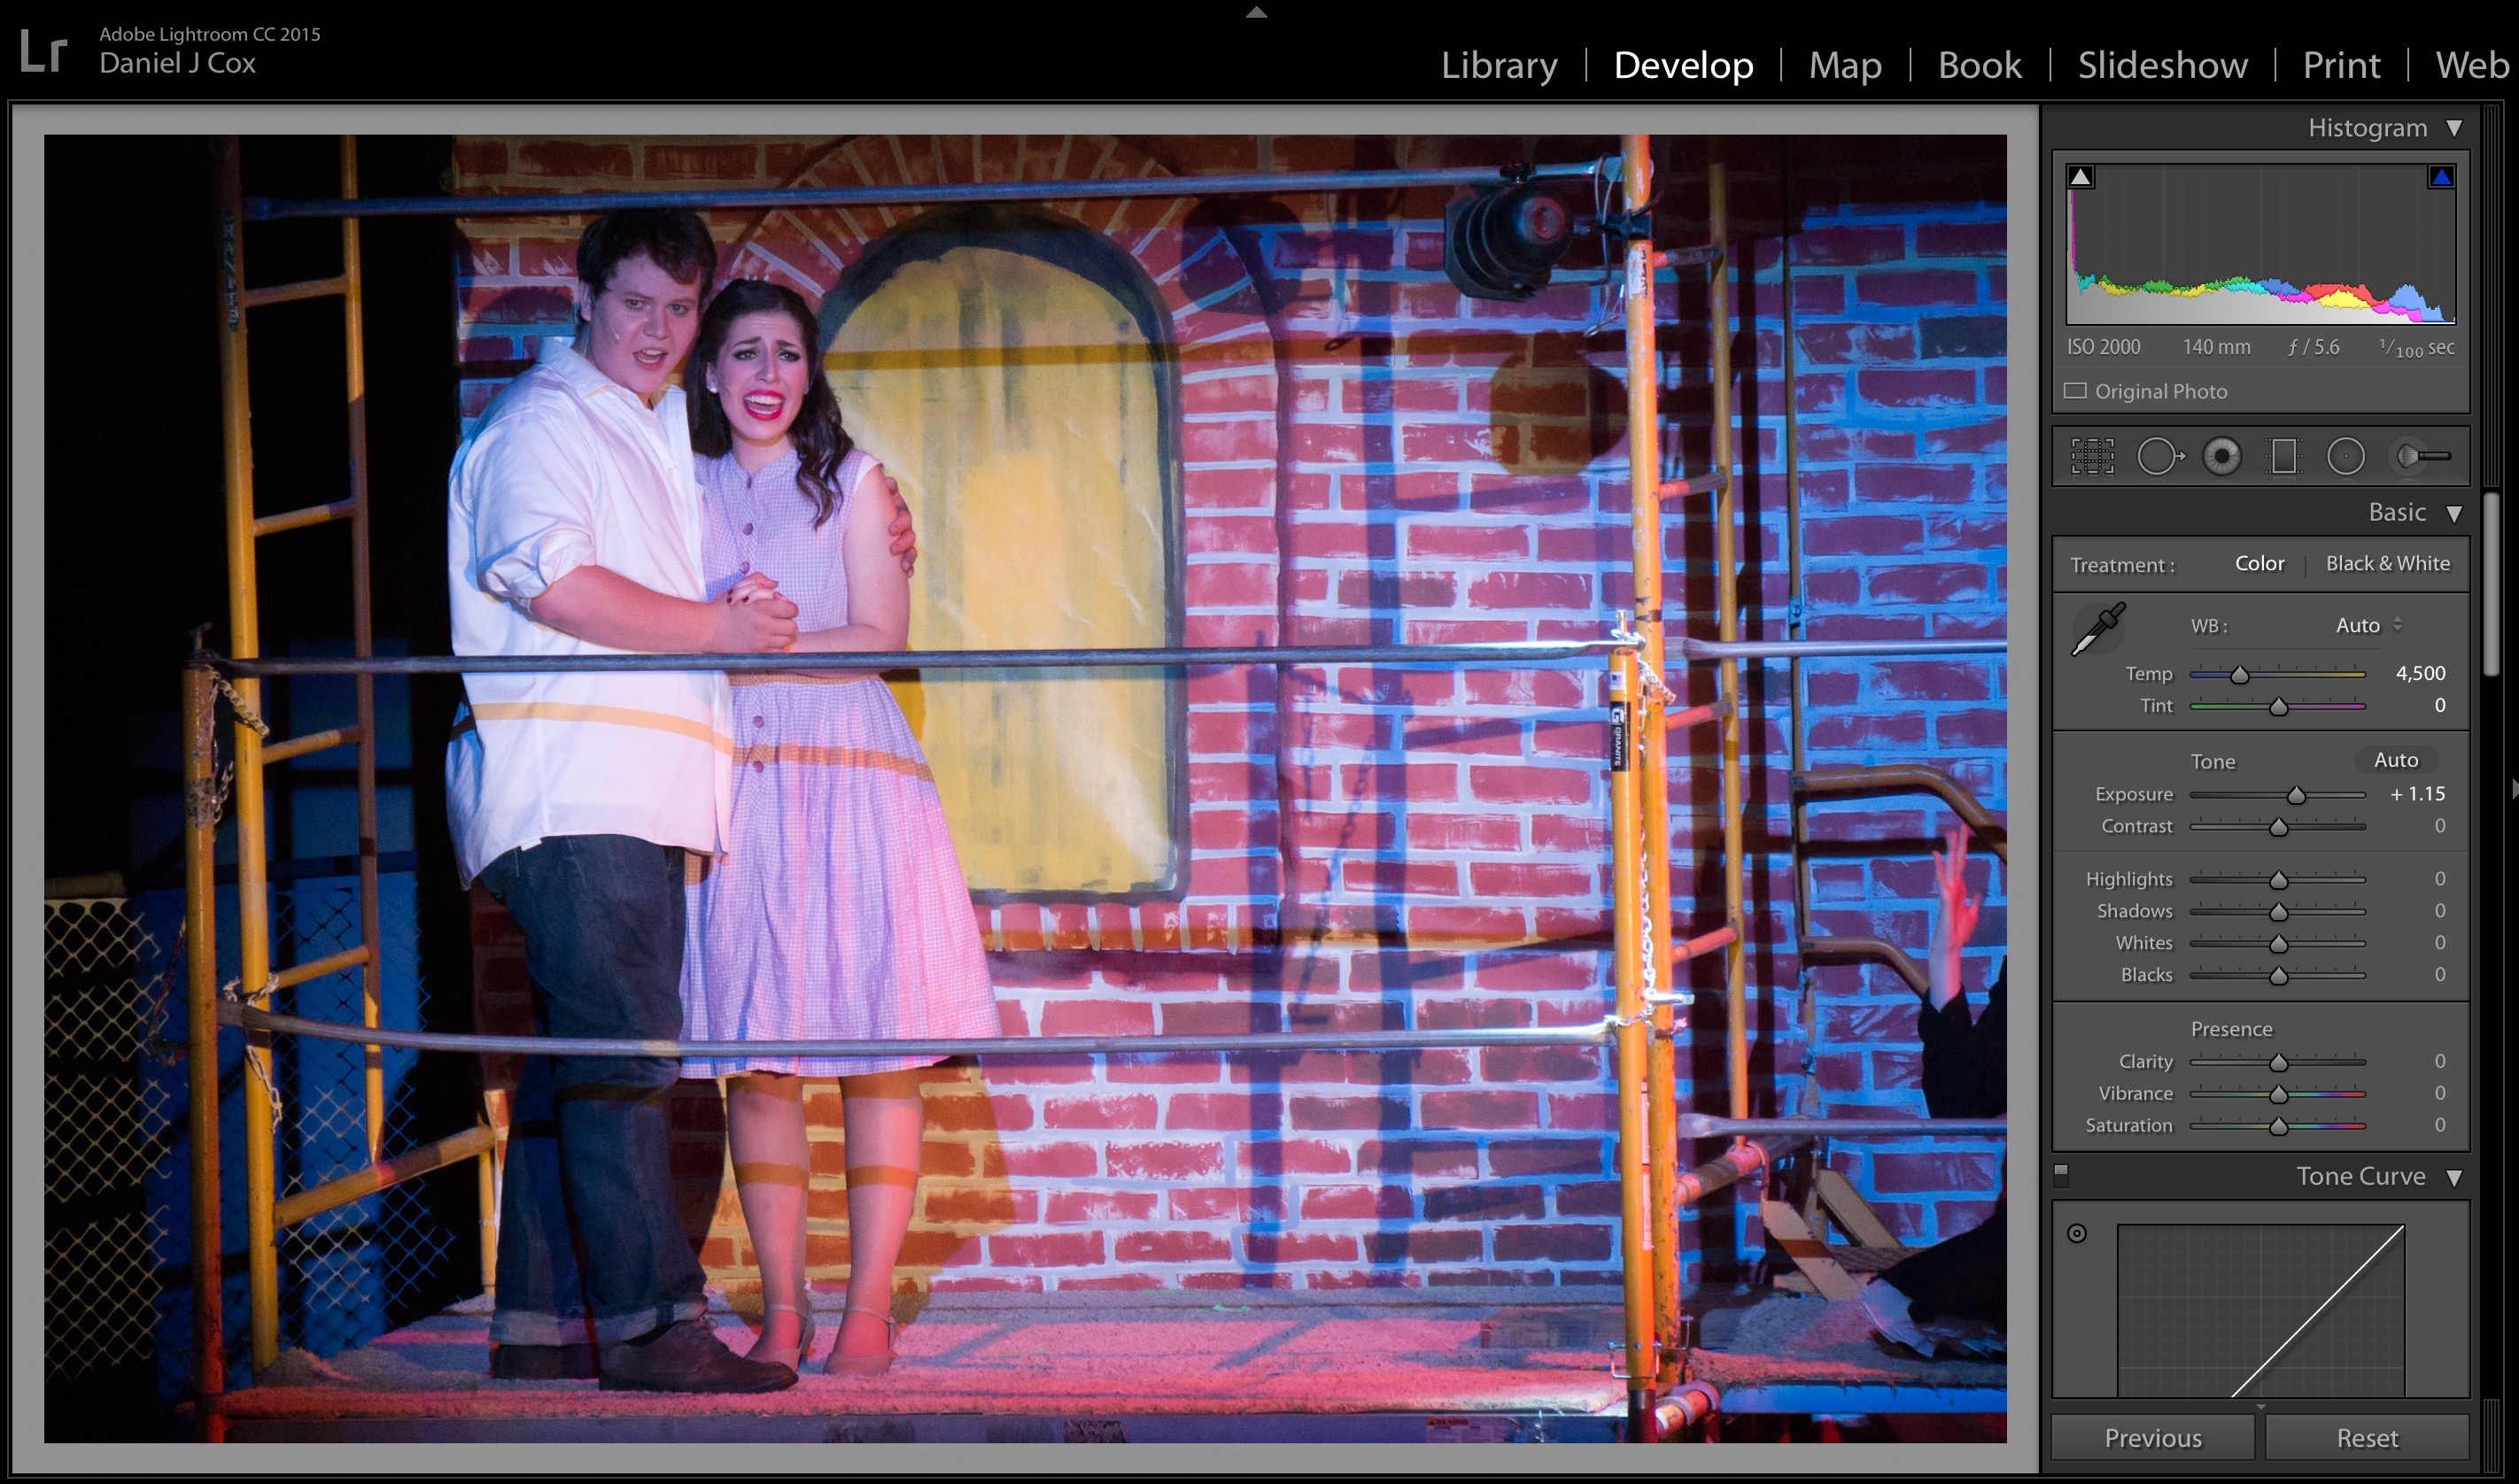 Olivia as Maria and Jake as Tony singing their hearts out. If there was sound in they image you would never be able concentrate on the perfect histogram in the upper right corner in Lightroom.